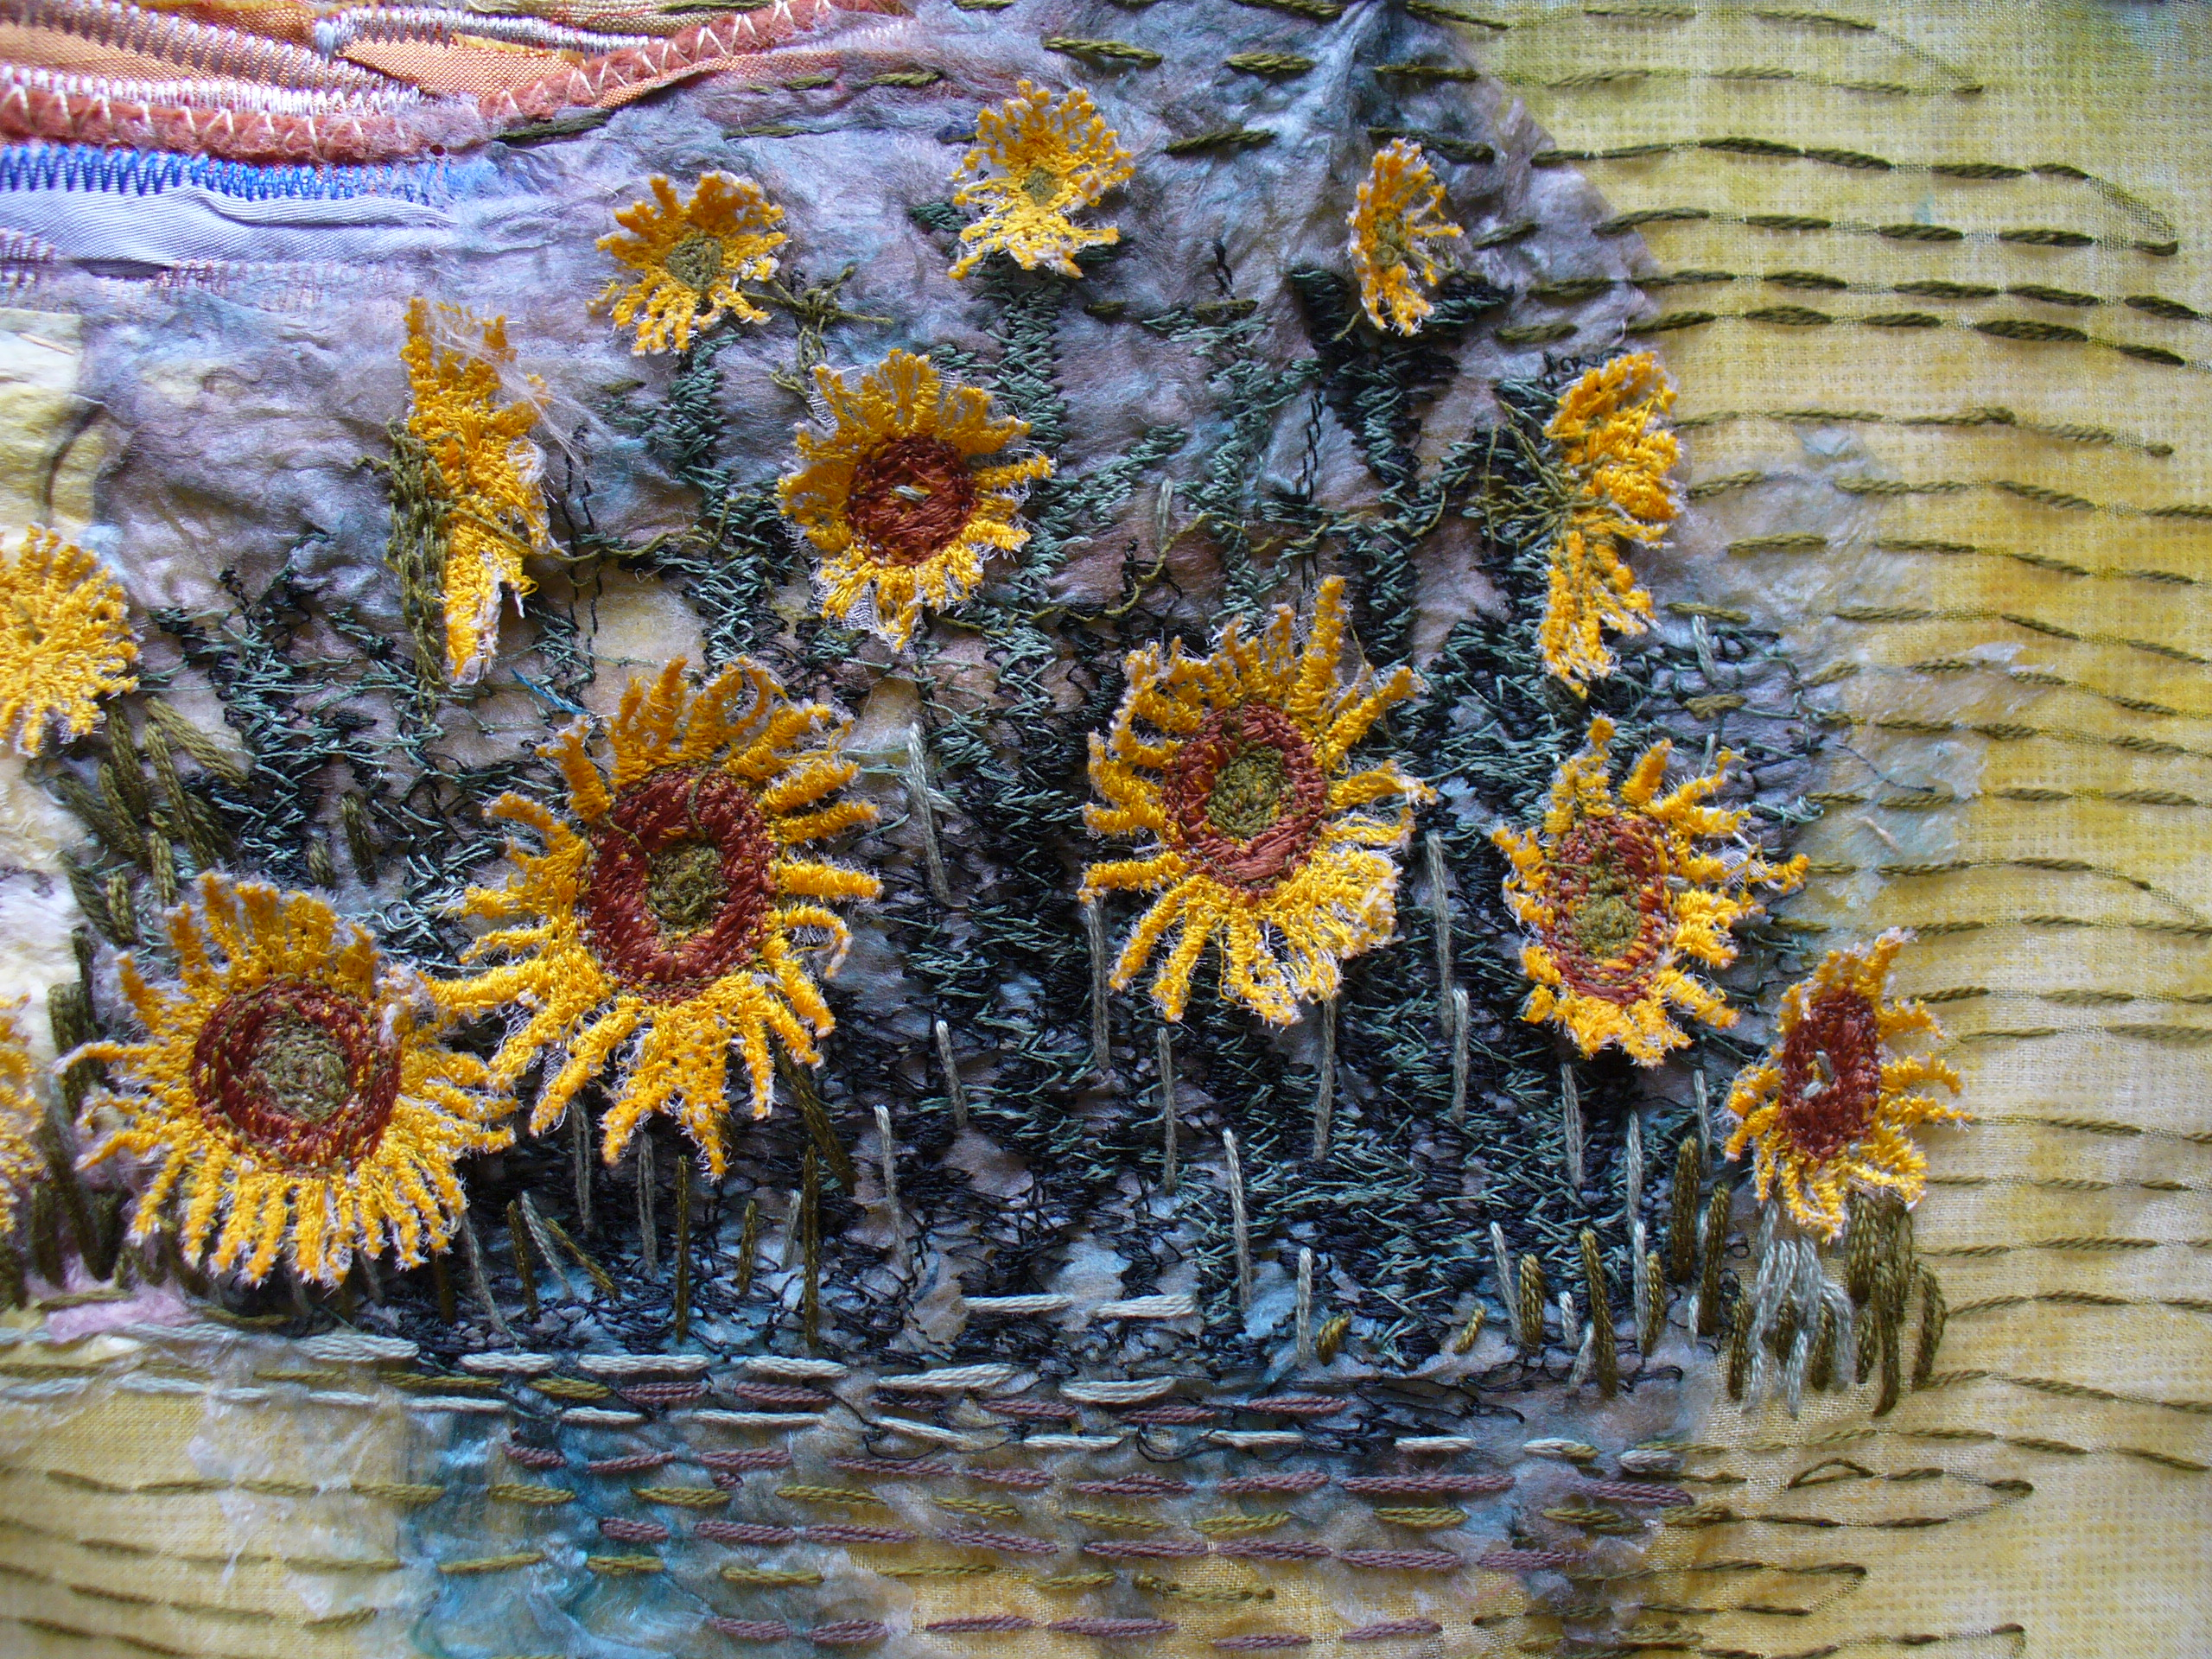 Sending Up Provence (detail) by Ann Rogers